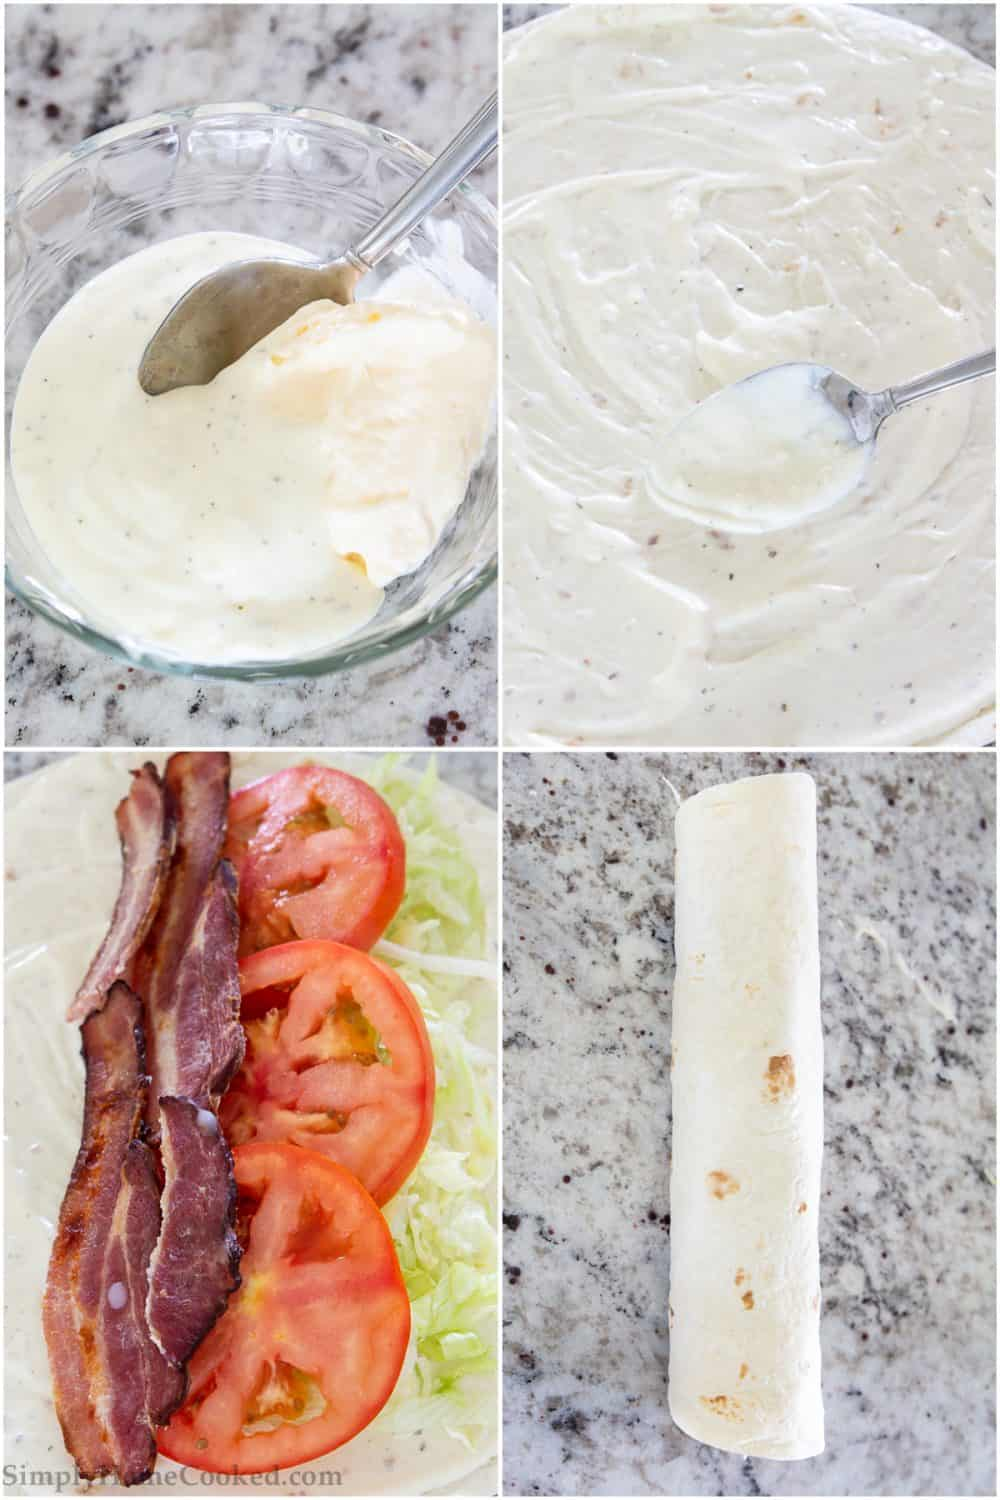 Four tiles showing steps to making Easy BLT Wraps: mixing dressings, spreading on tortilla, layering bacon, lettuce, and tomato, and then wrapping it all up.